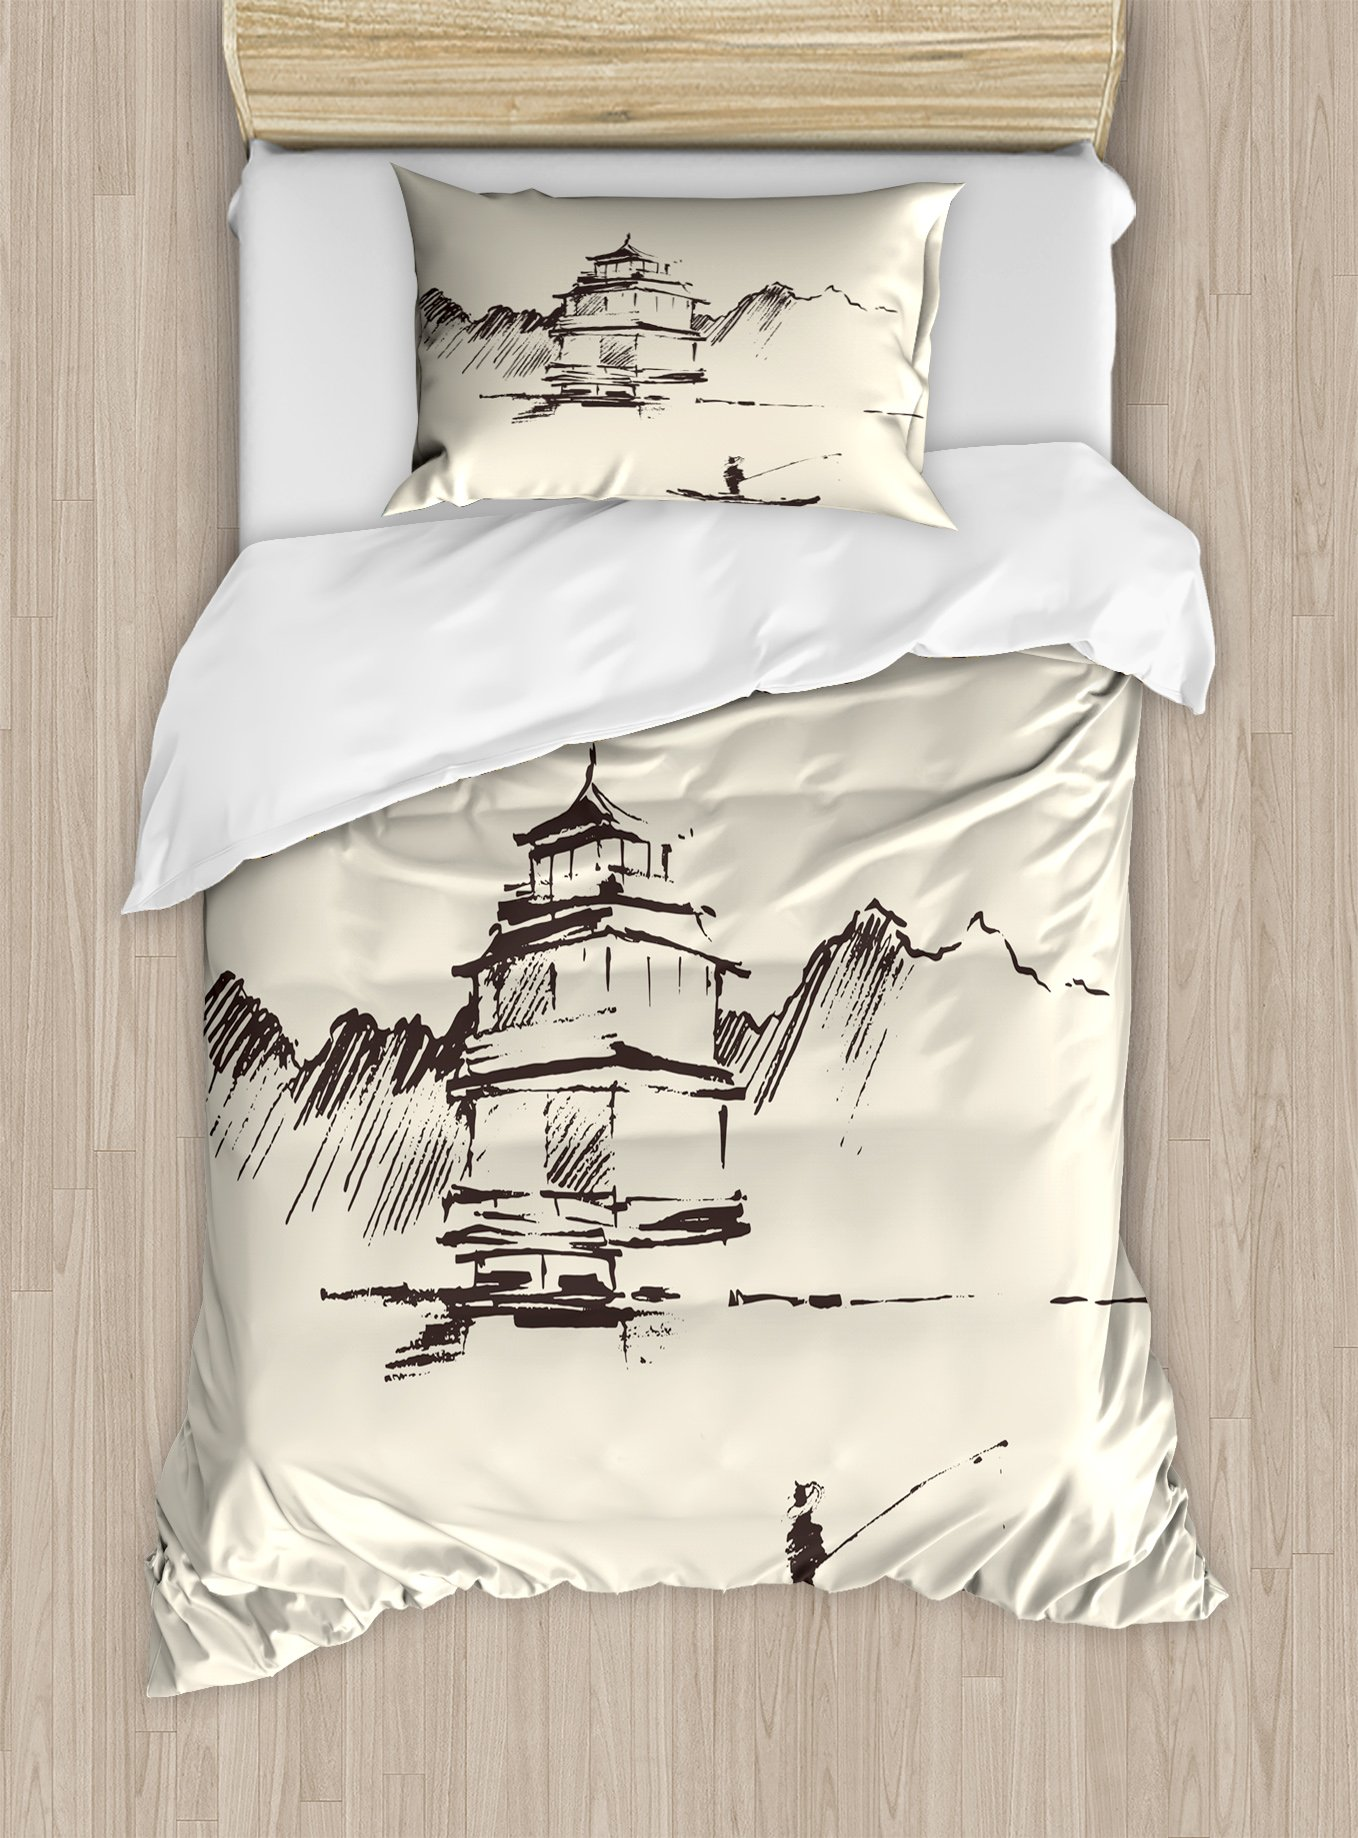 Ambesonne Vintage China Duvet Cover Set, Sketch Art of Oriental Landscape with Pagoda Fishing Man and Mountain, Decorative 2 Piece Bedding Set with 1 Pillow Sham, Twin Size, Brown Beige